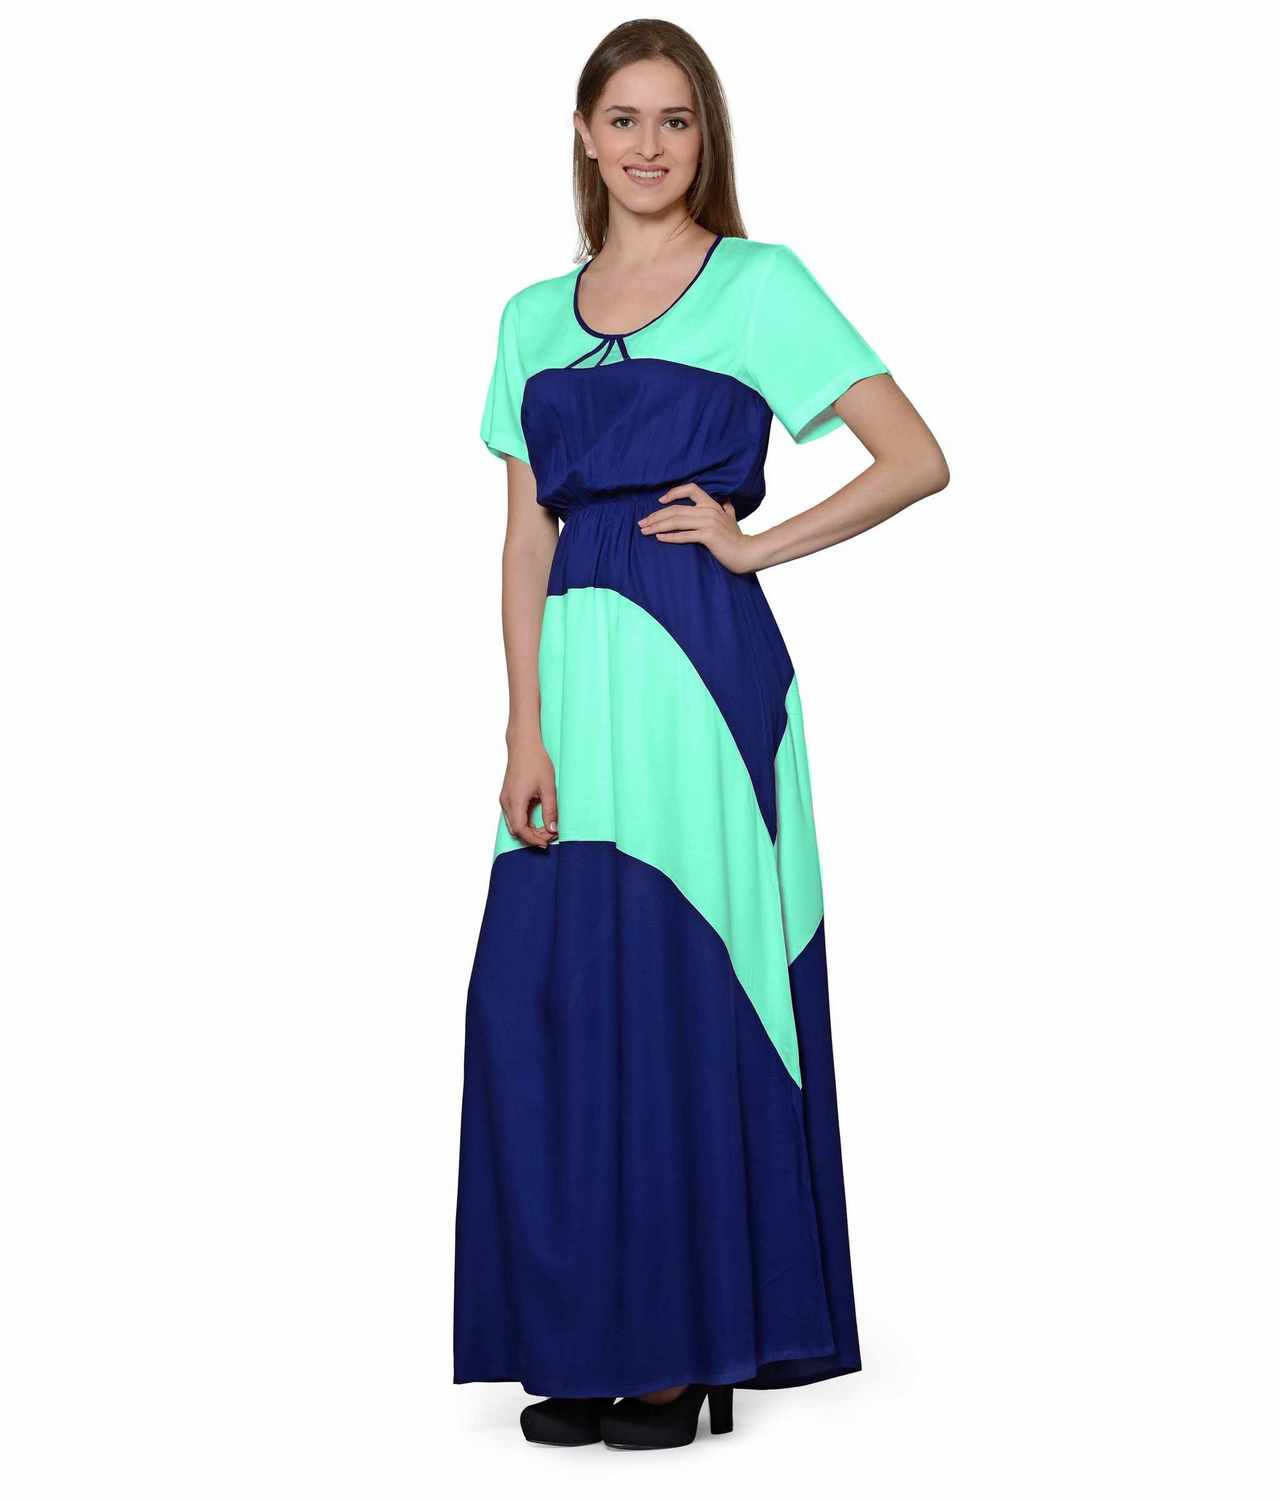 Color Block Slim Fit Maxi Dress Gown in Teal Green:Royal Blue